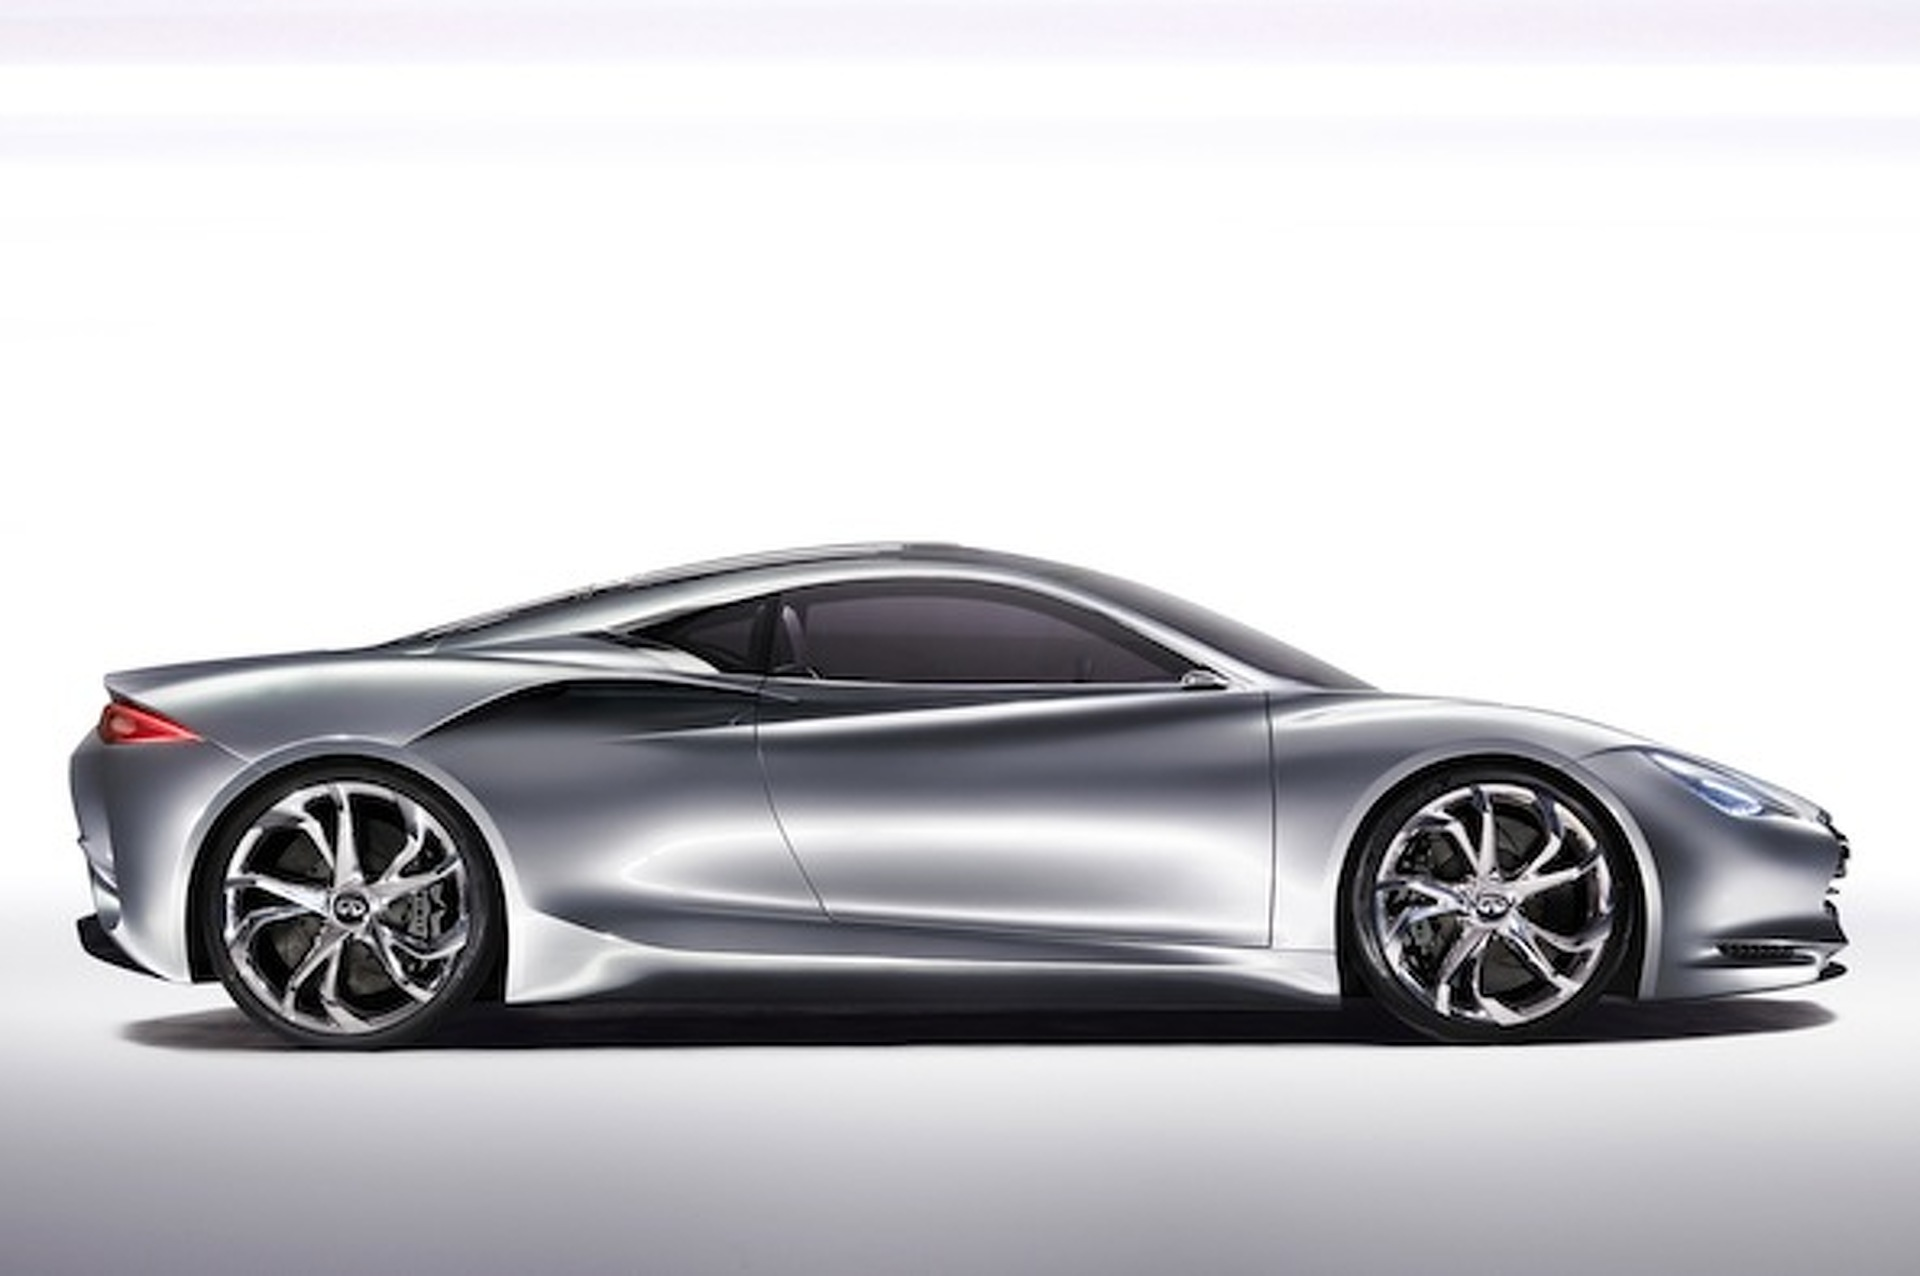 Infiniti Supercar Won't be Ready Until 2018